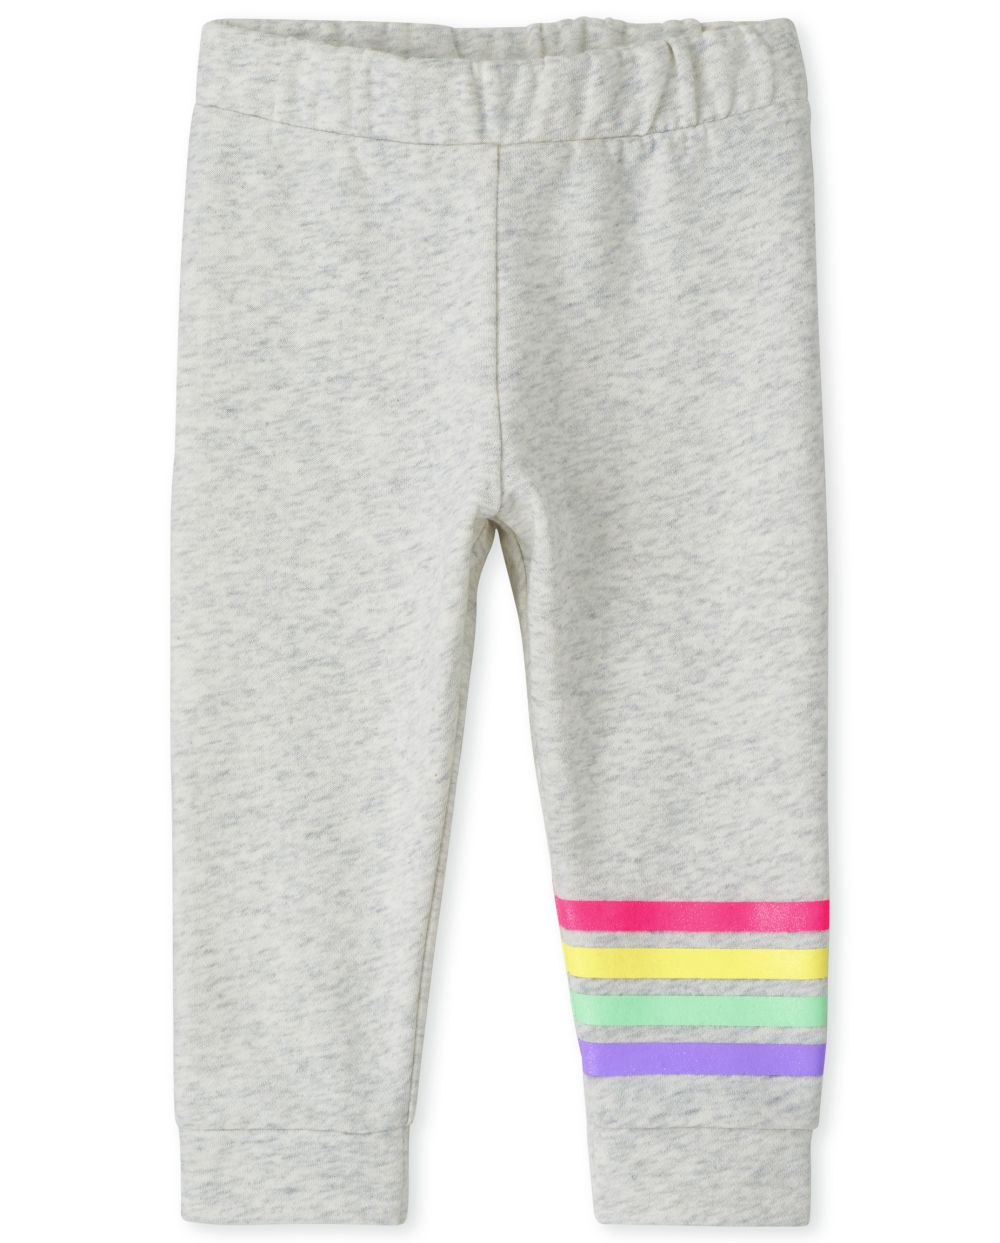 Baby Girls Baby And Toddler Rainbow Fleece Jogger Pants - Gray - The Children's Place